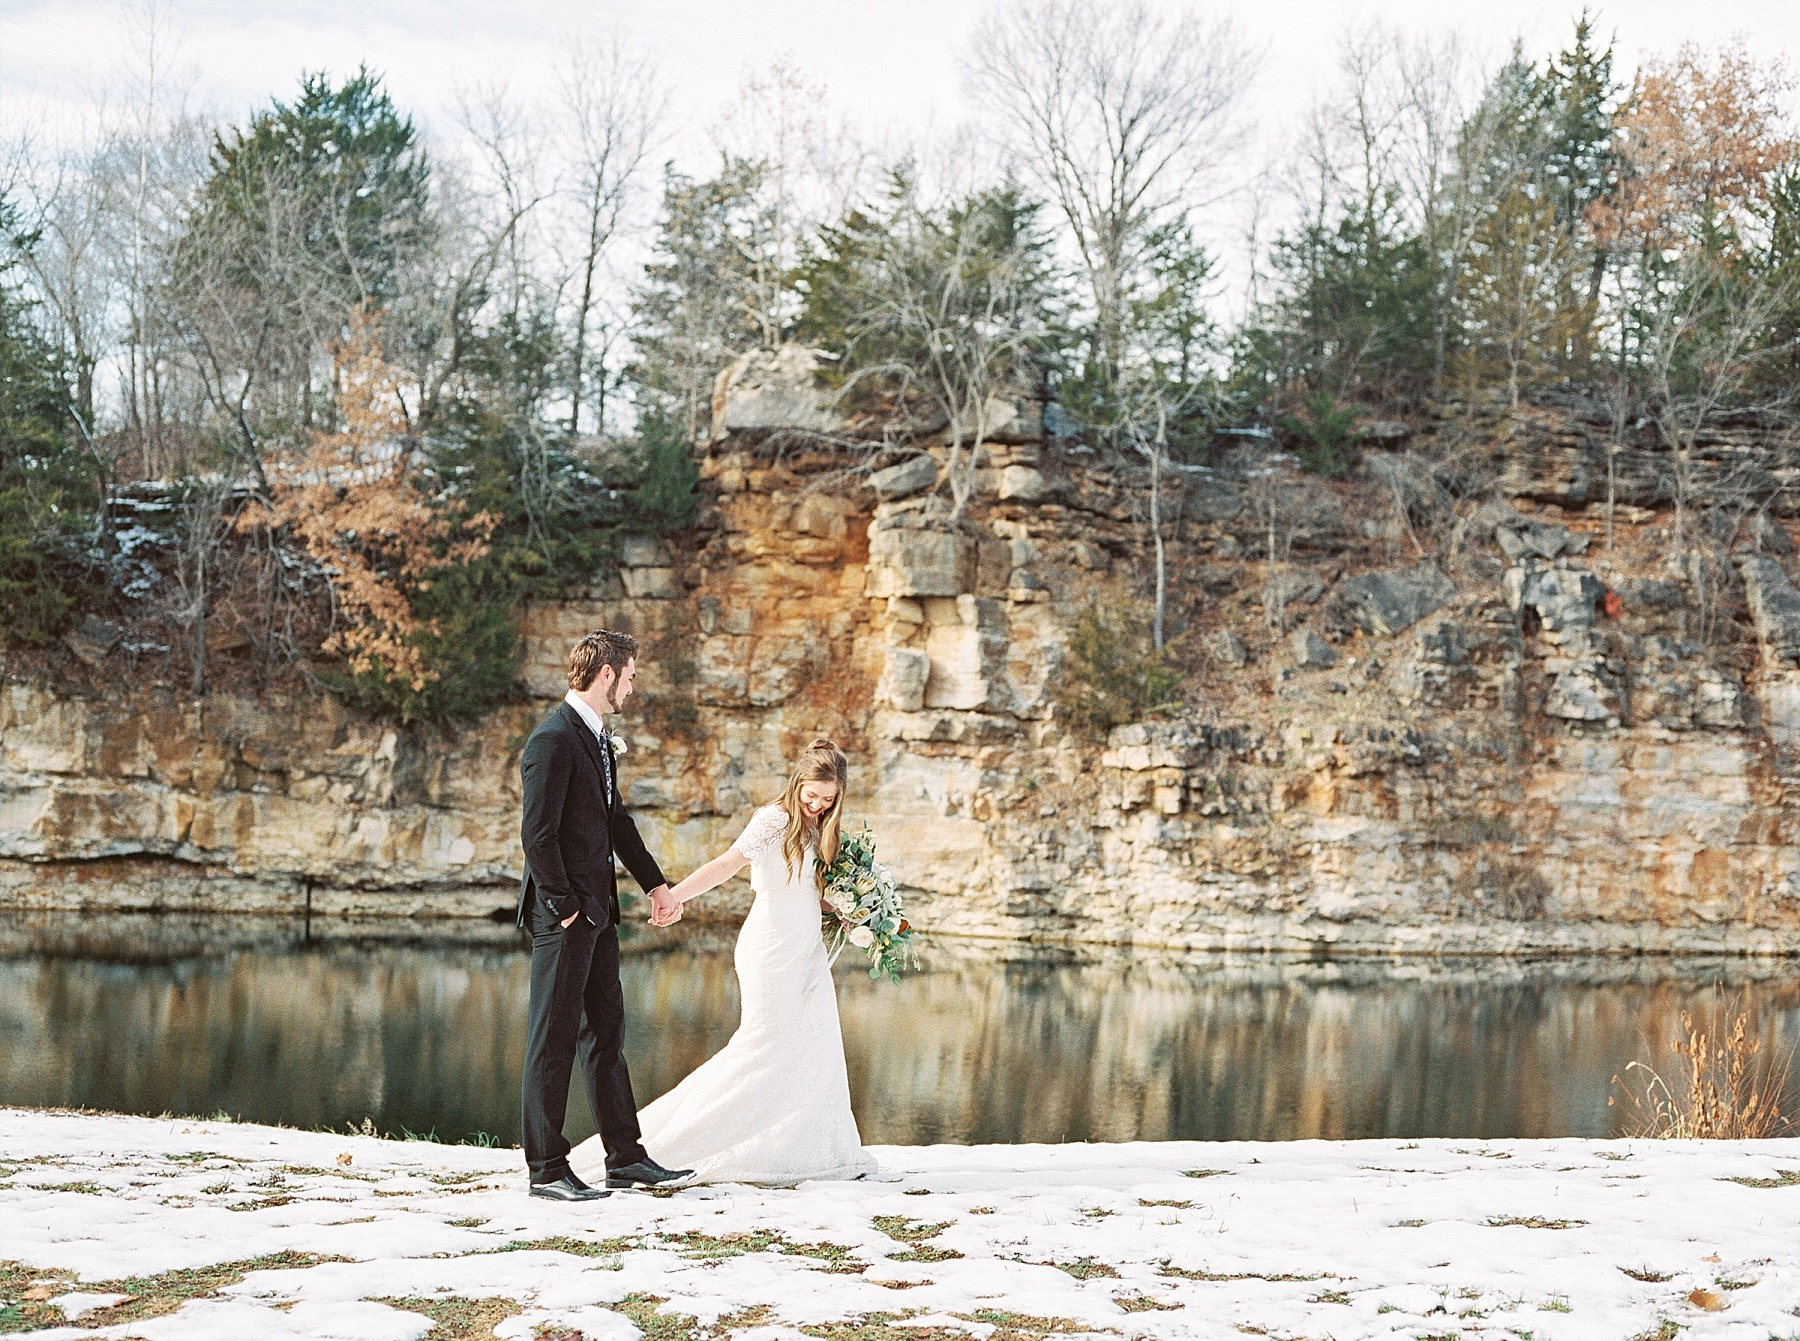 Snowy Winter Wedding at Wildcliff Events Lake With Earthy Jewel Tones and Organic Refined Style by Kelsi Kliethermes Photography Kansas City Missouri Wedding Photographer_0035.jpg